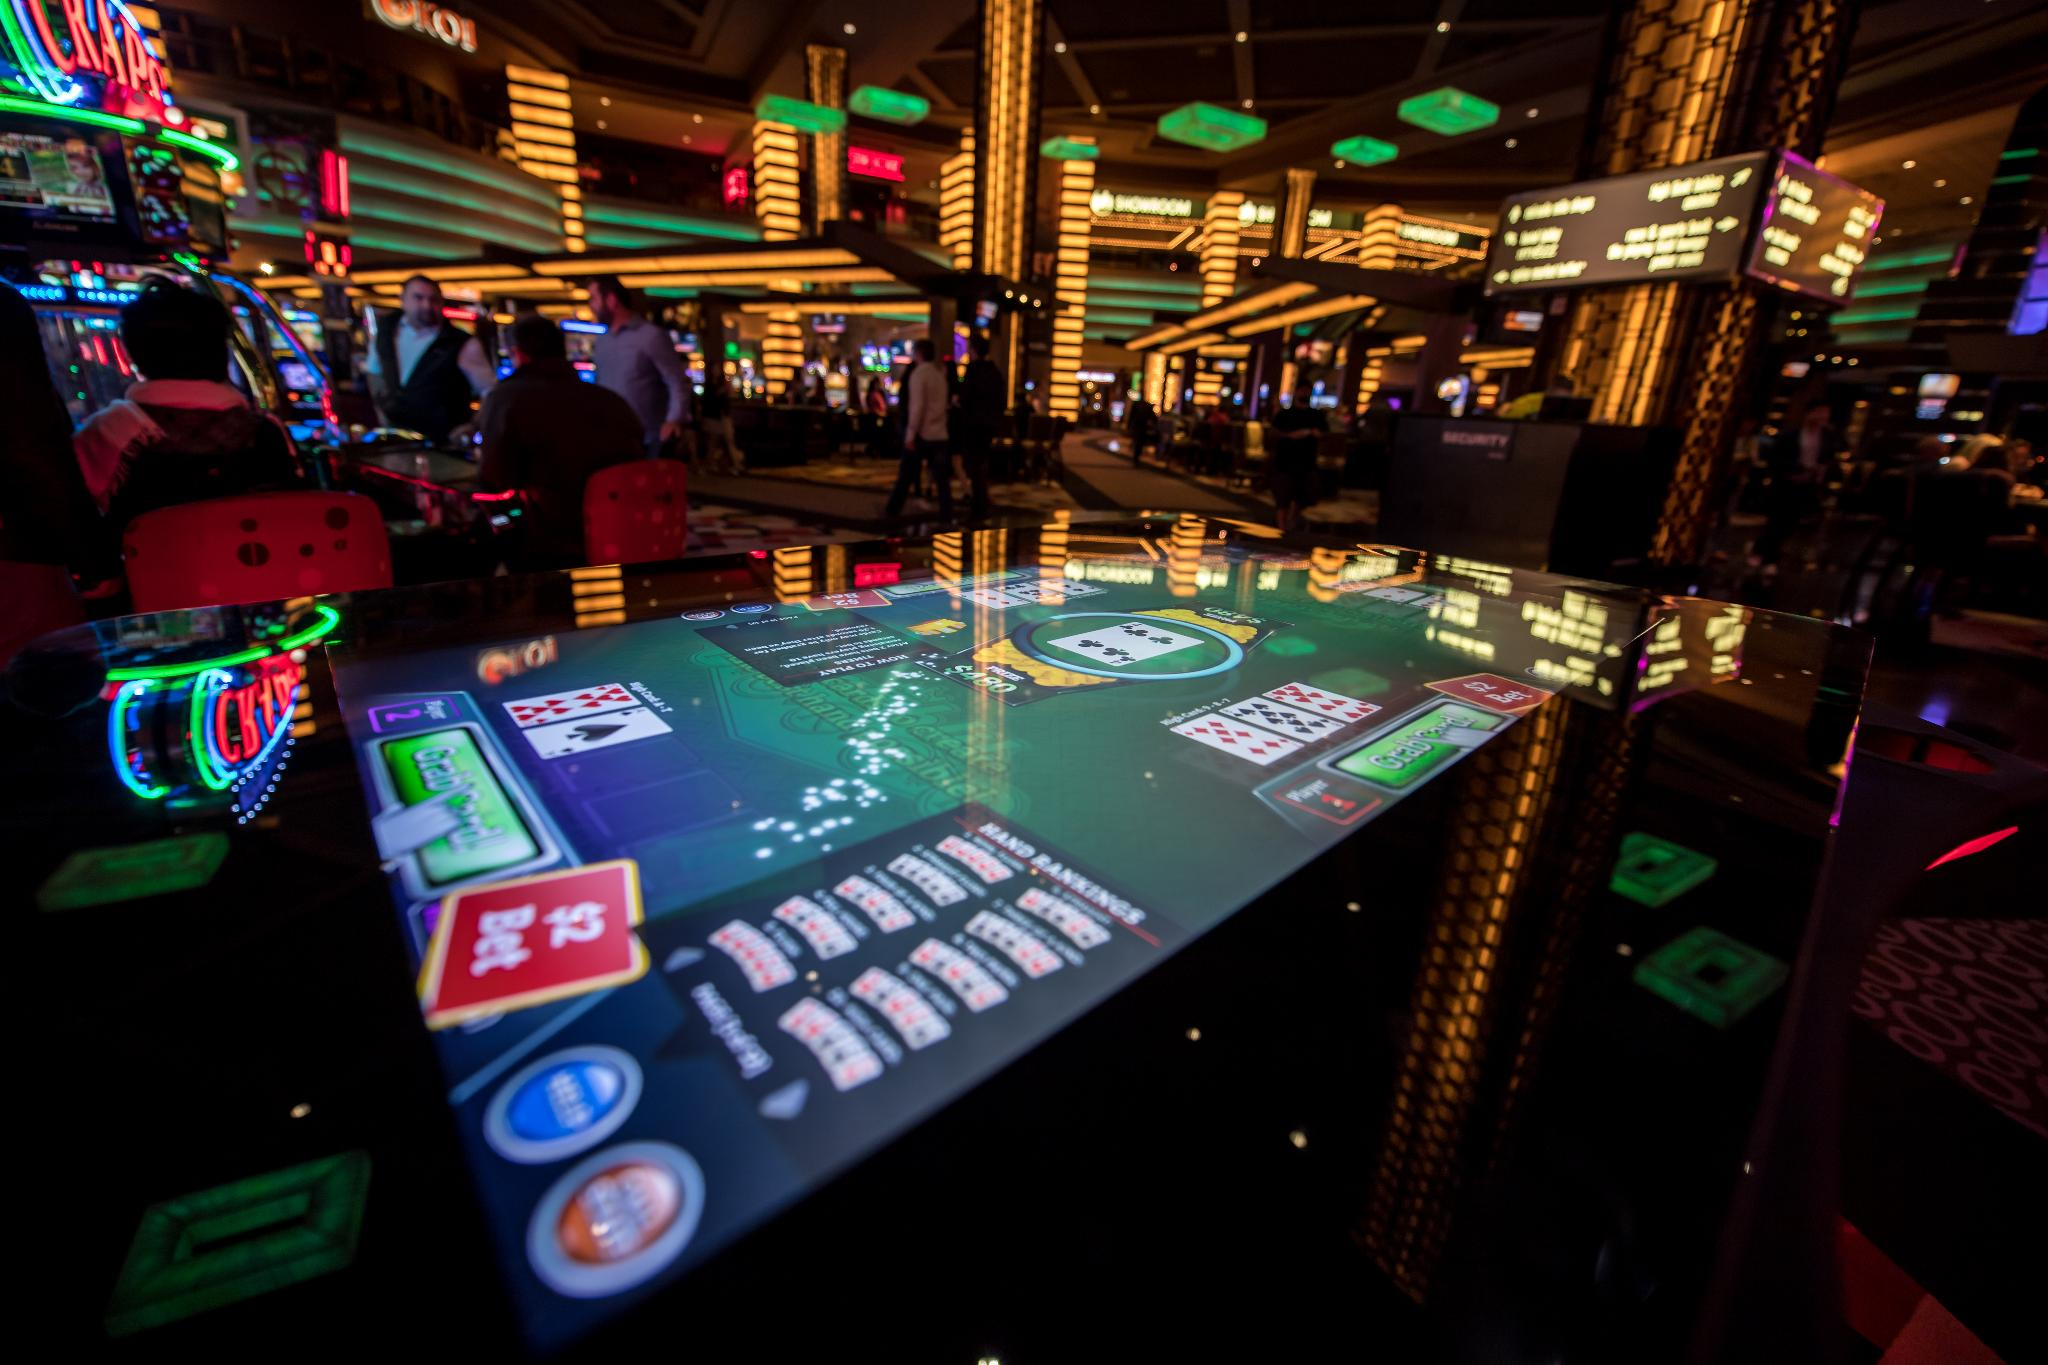 skill-based gaming Las Vegas slot machines